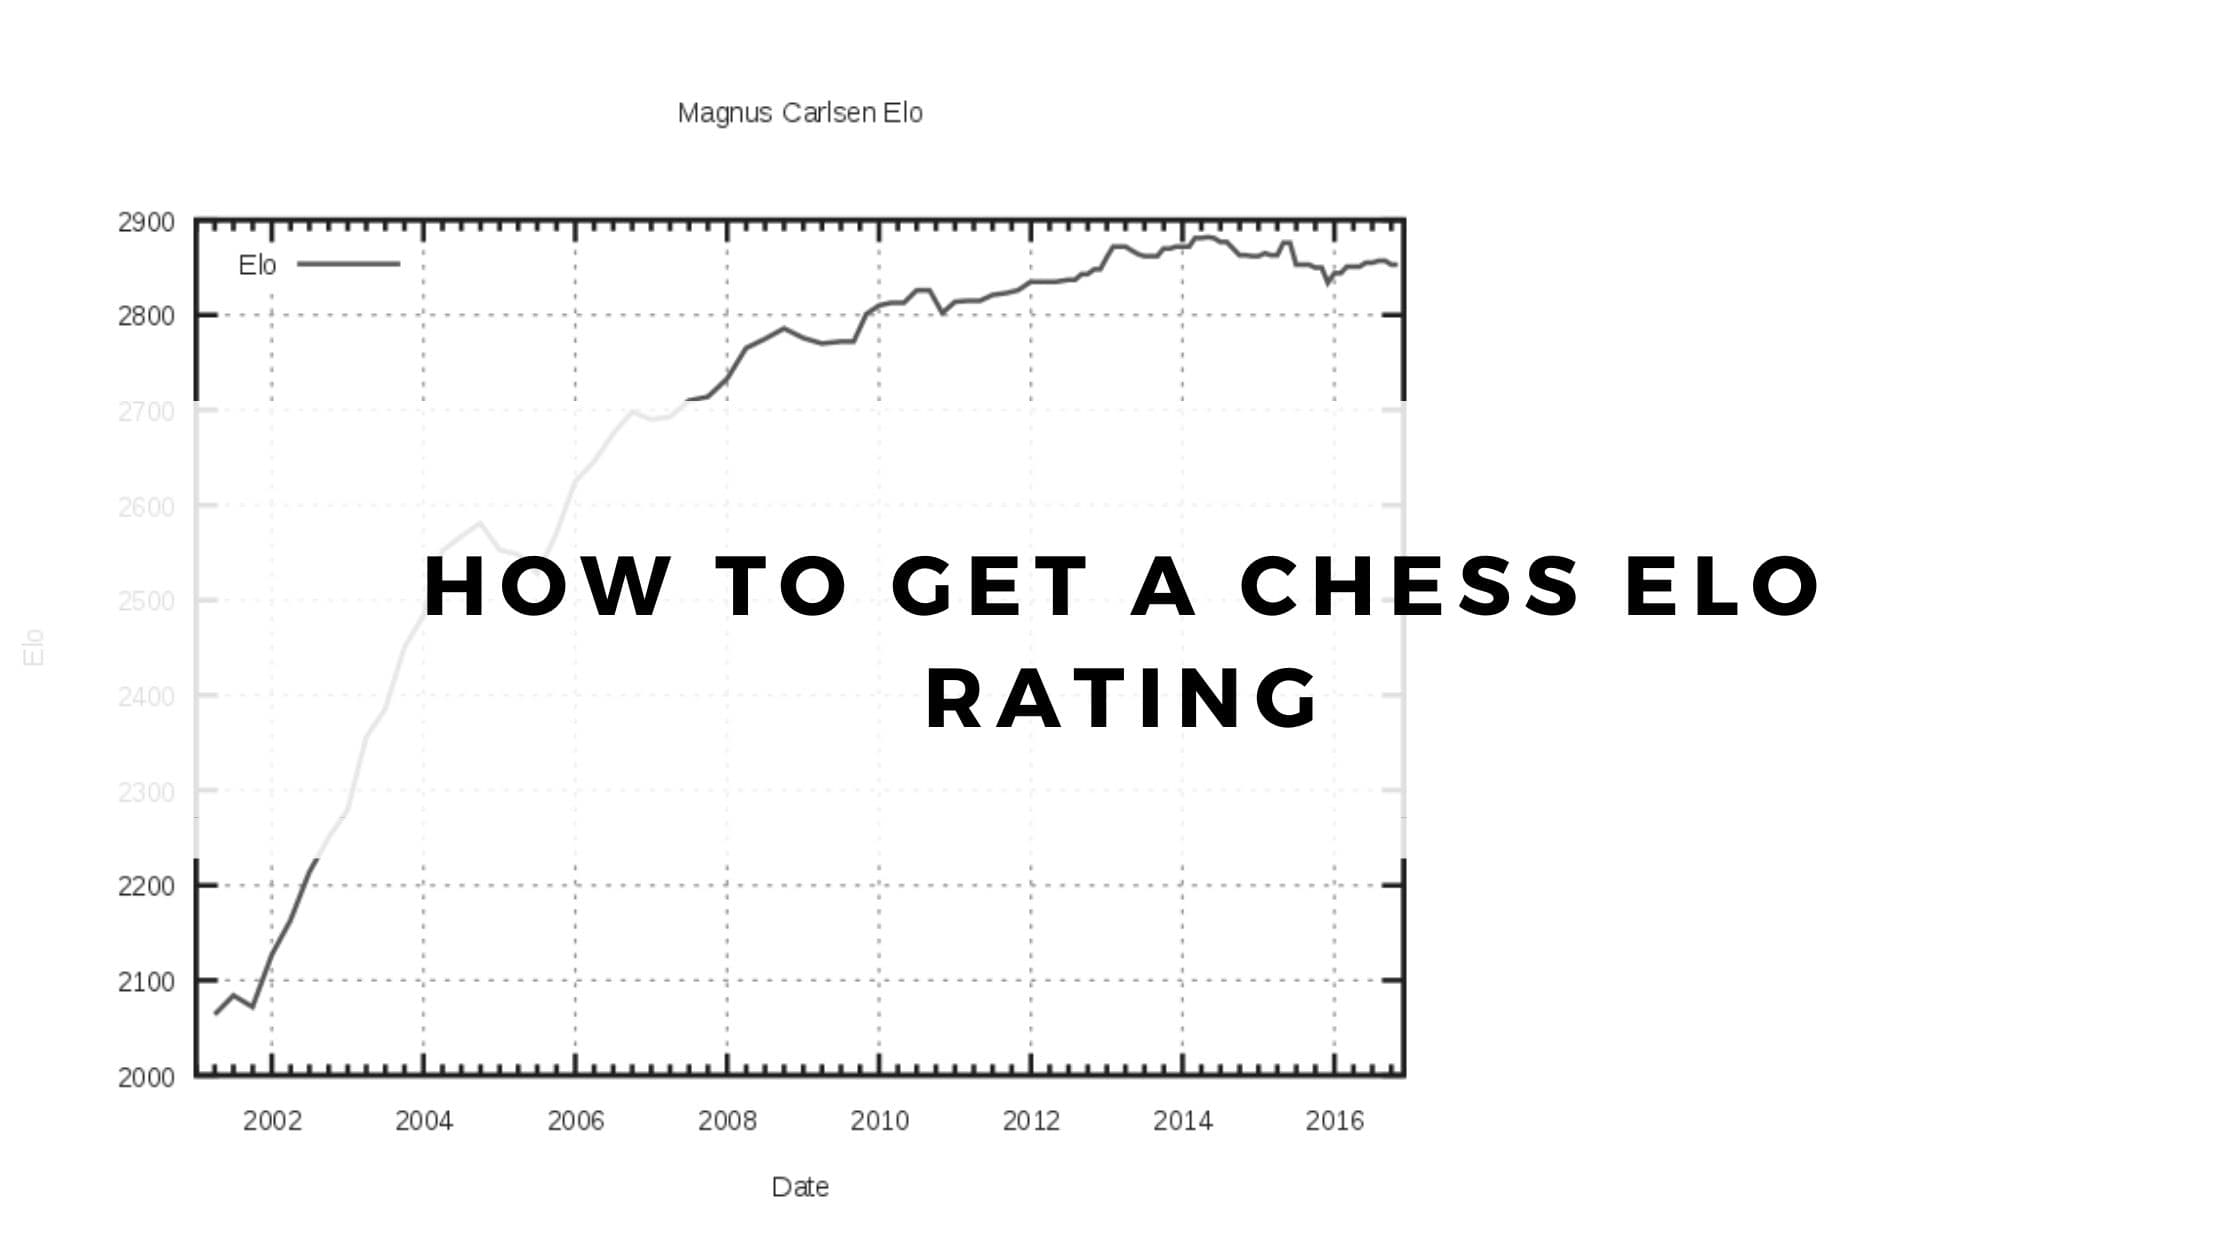 How to Get a Chess Elo Rating